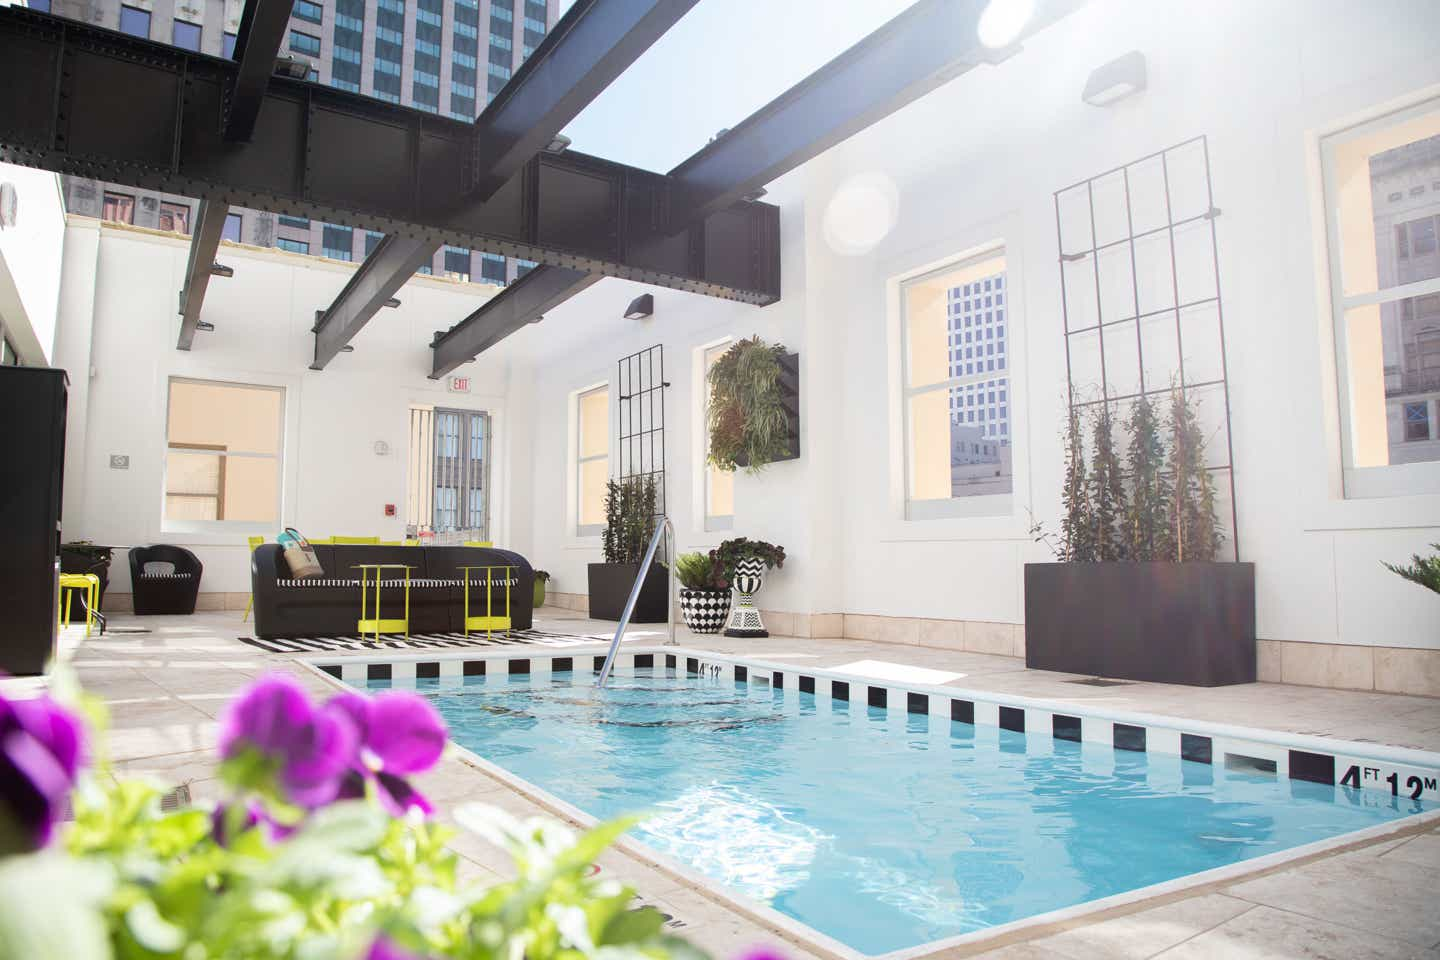 An exposed ceiling, rooftop dipping pool with black and lime green furnishings located in our resort in New Orleans, Louisiana.